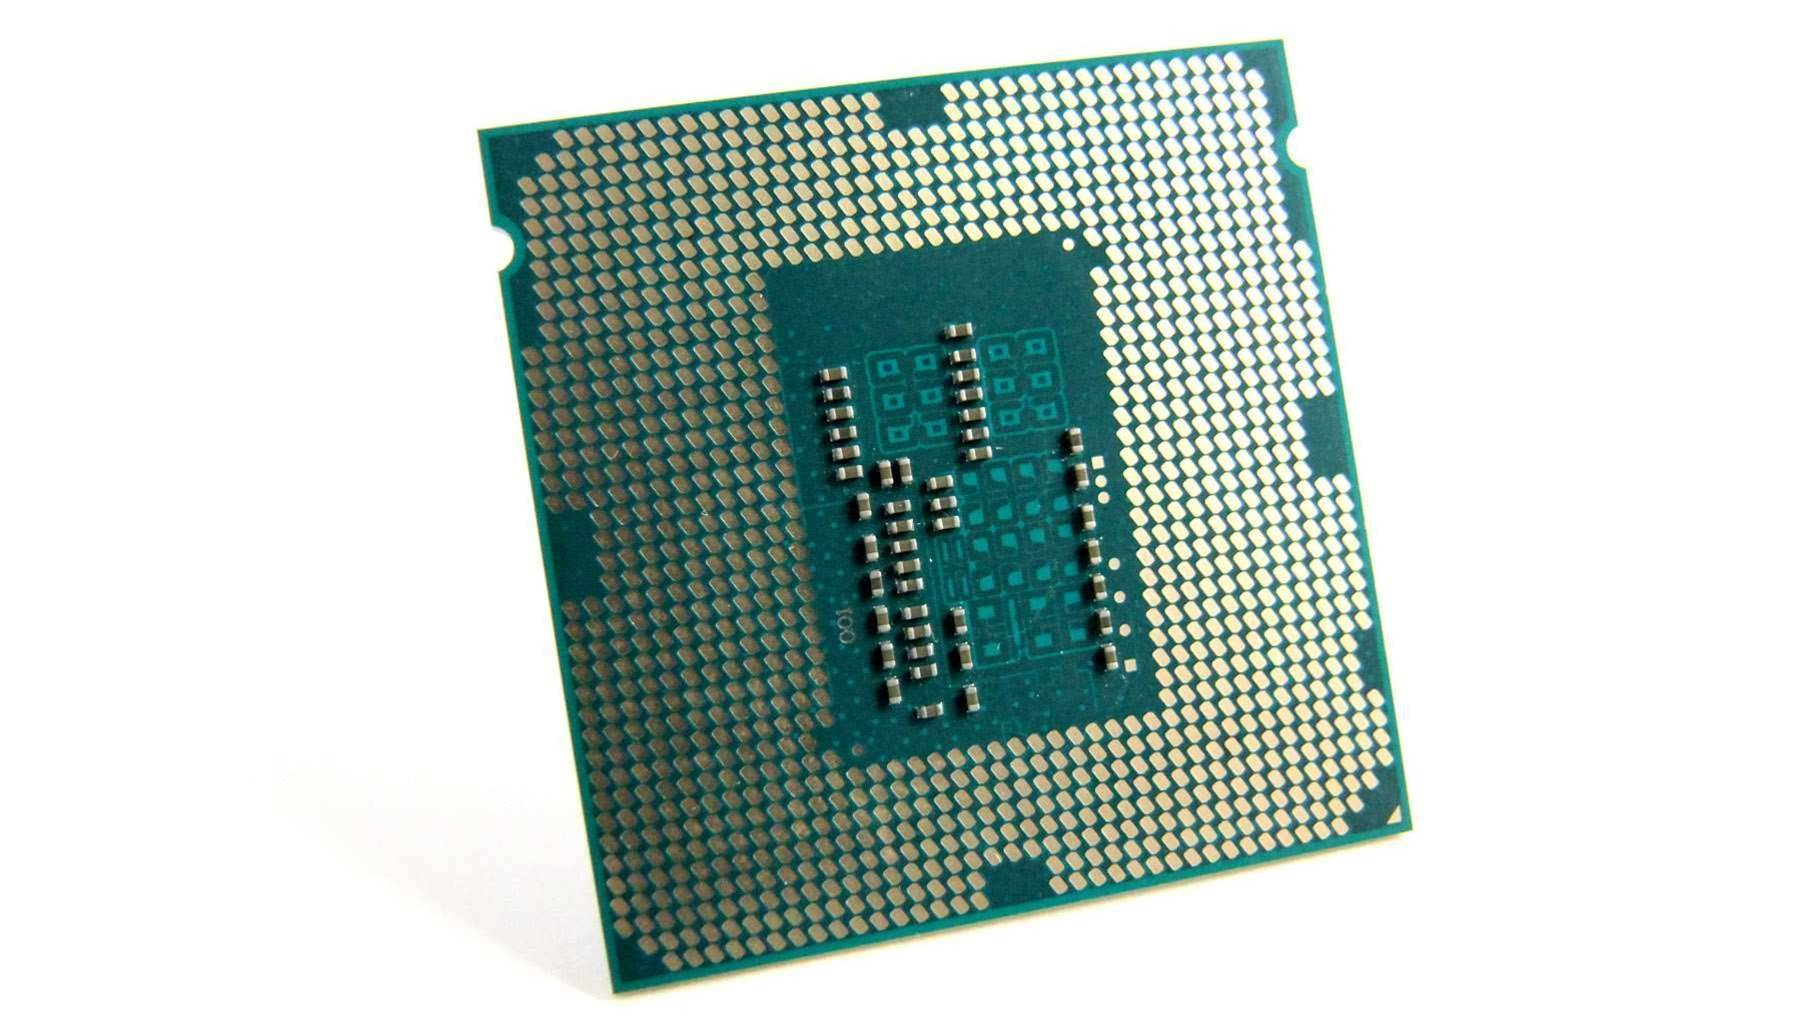 Review: Intel Pentium G3258 Anniversary Edition